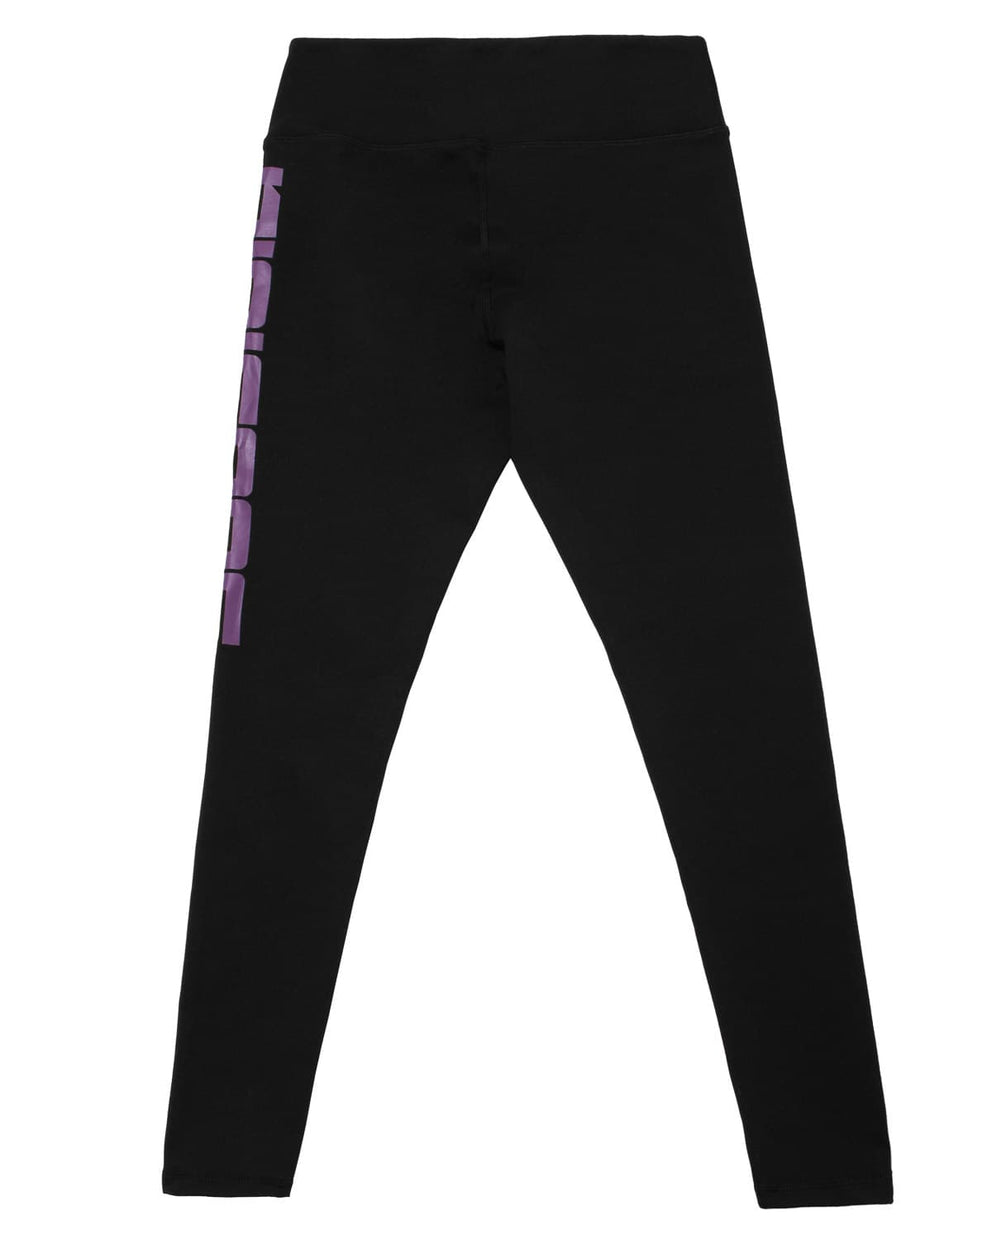 Subsidia Mid Waist Leggings - Black/Purple